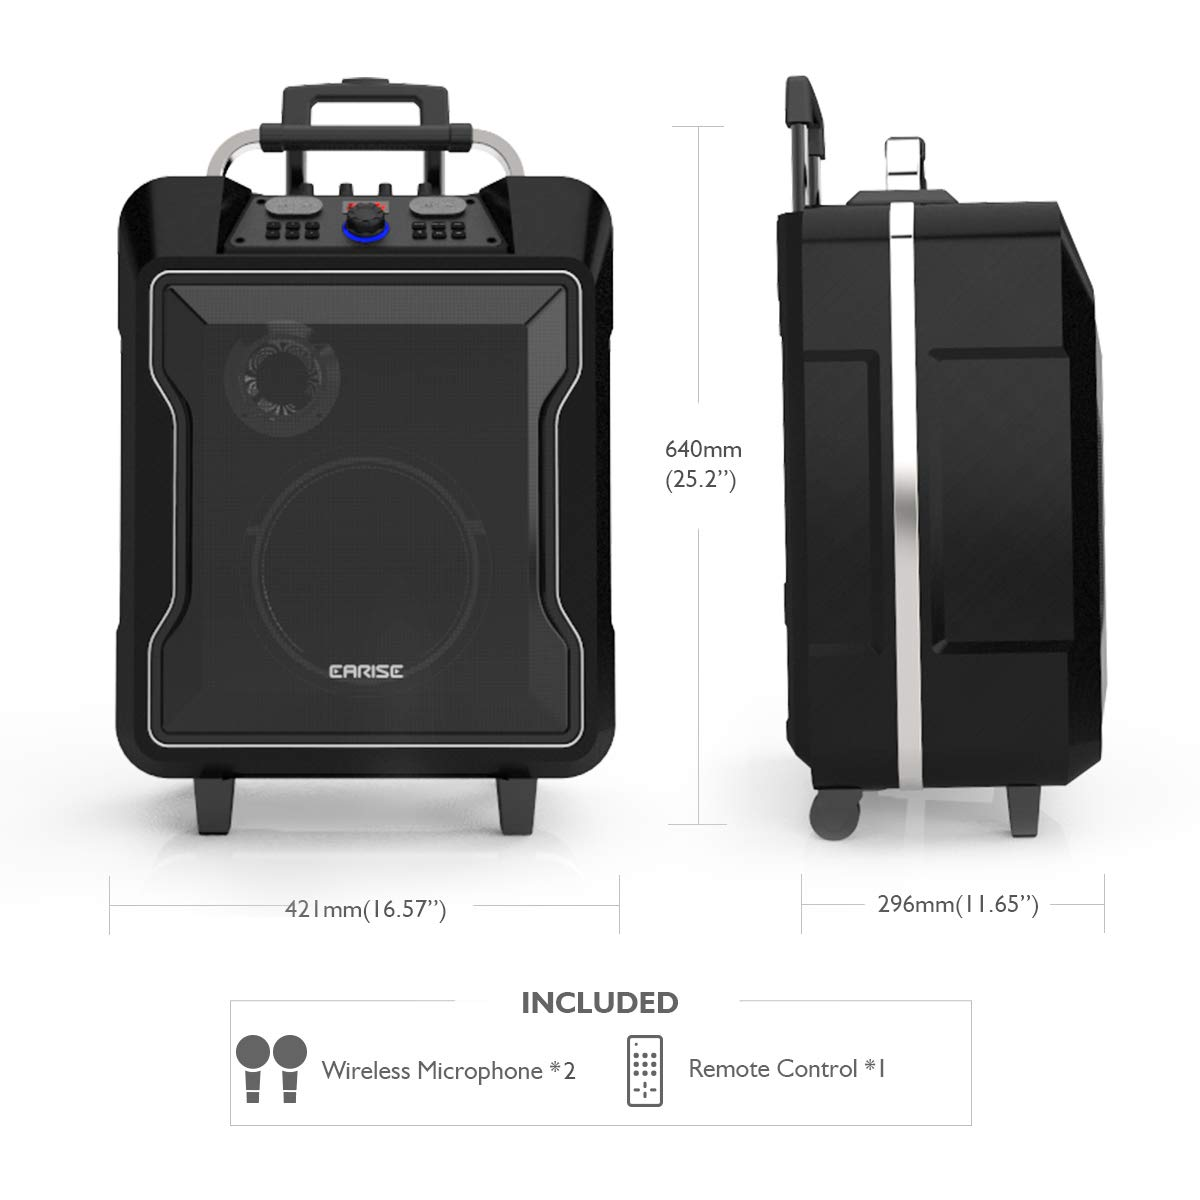 USB Charging /& Wheels Black Telescoping Handle LED Display Remote Control Soft Metal Aux Input EARISE M60 Portable PA System Bluetooth Loudspeaker with 2 Wireless Microphone,10 Subwoofer